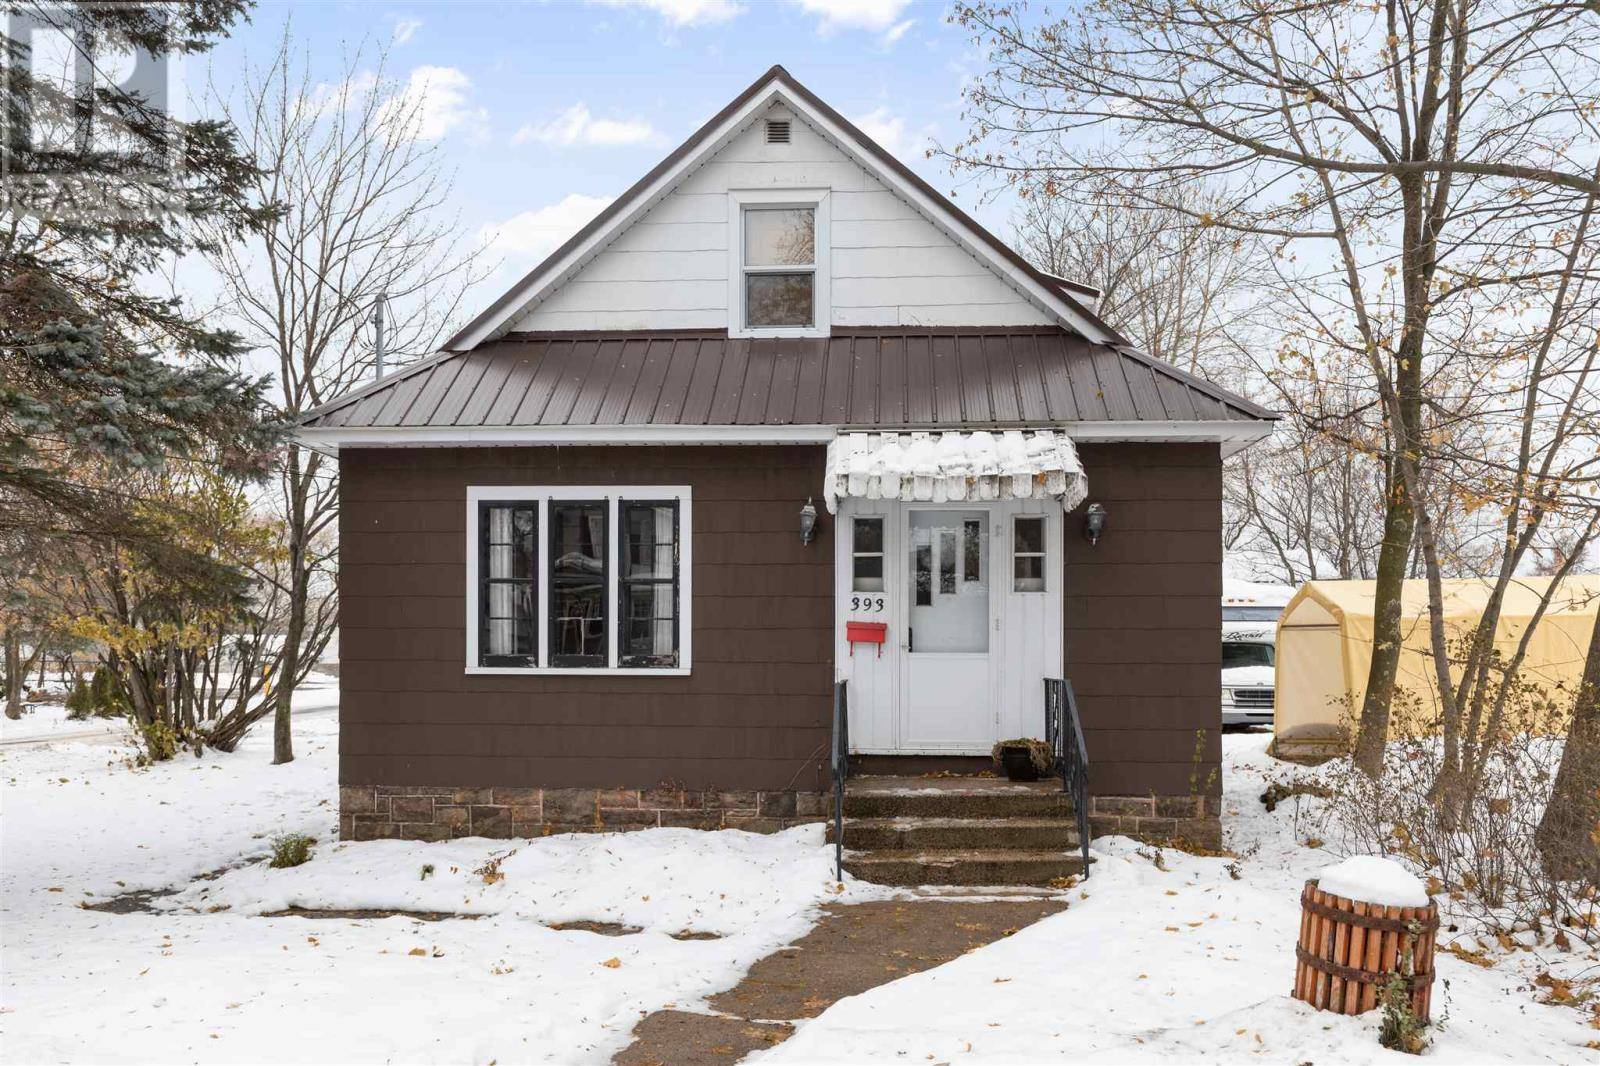 House for sale at 393 North St Sault Ste. Marie Ontario - MLS: SM127462